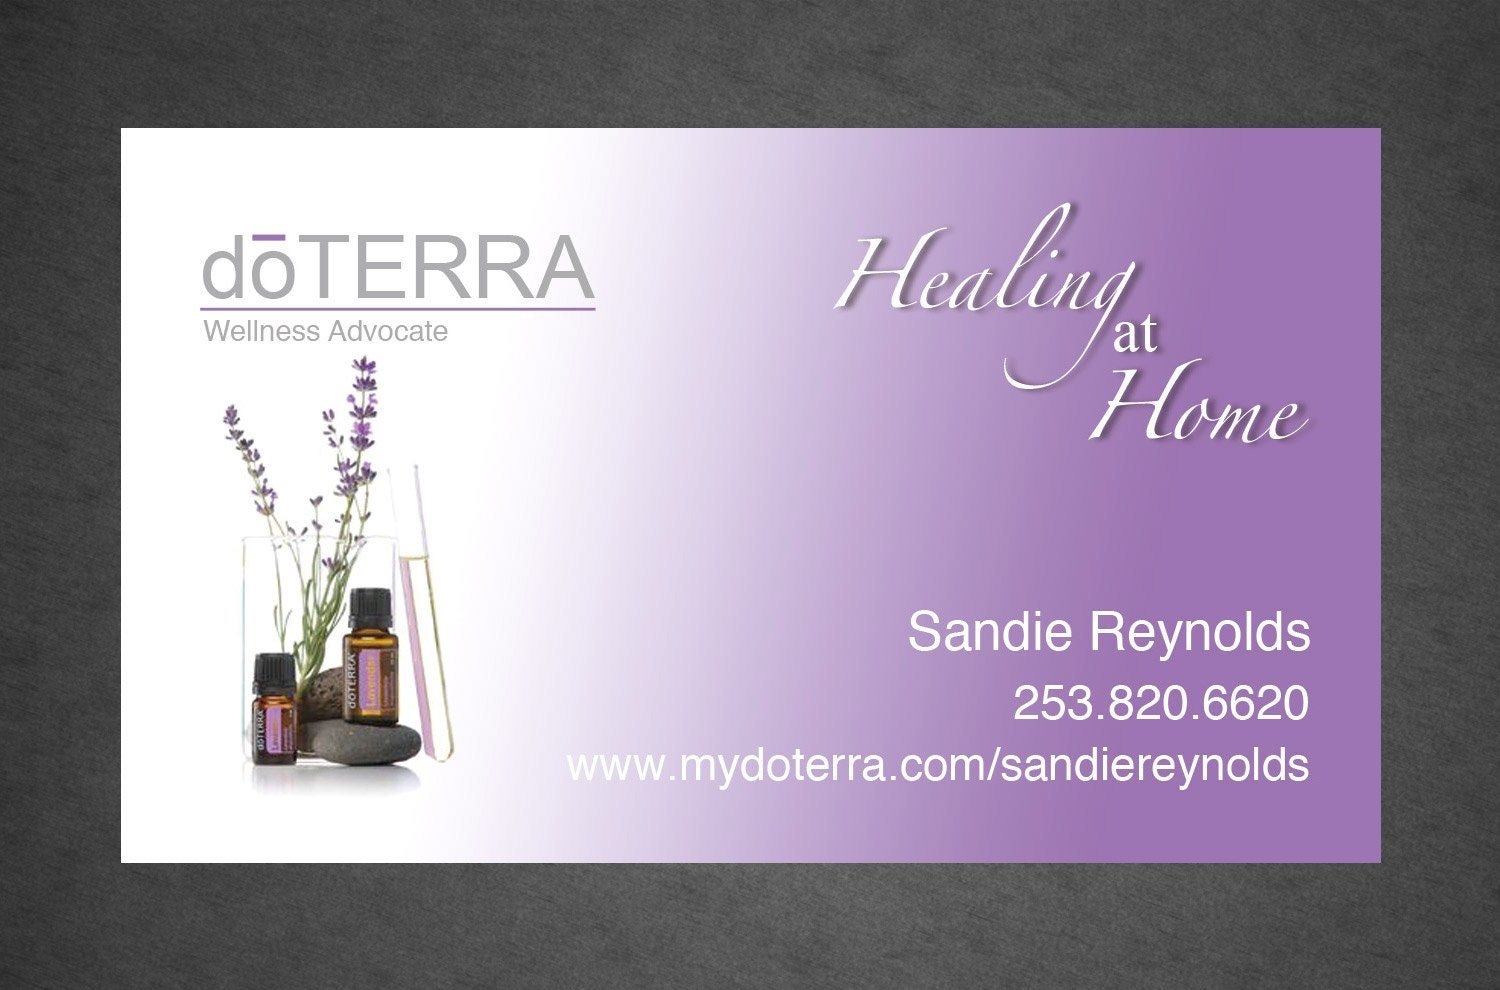 Digital doterra business card design full color by for Doterra business card template